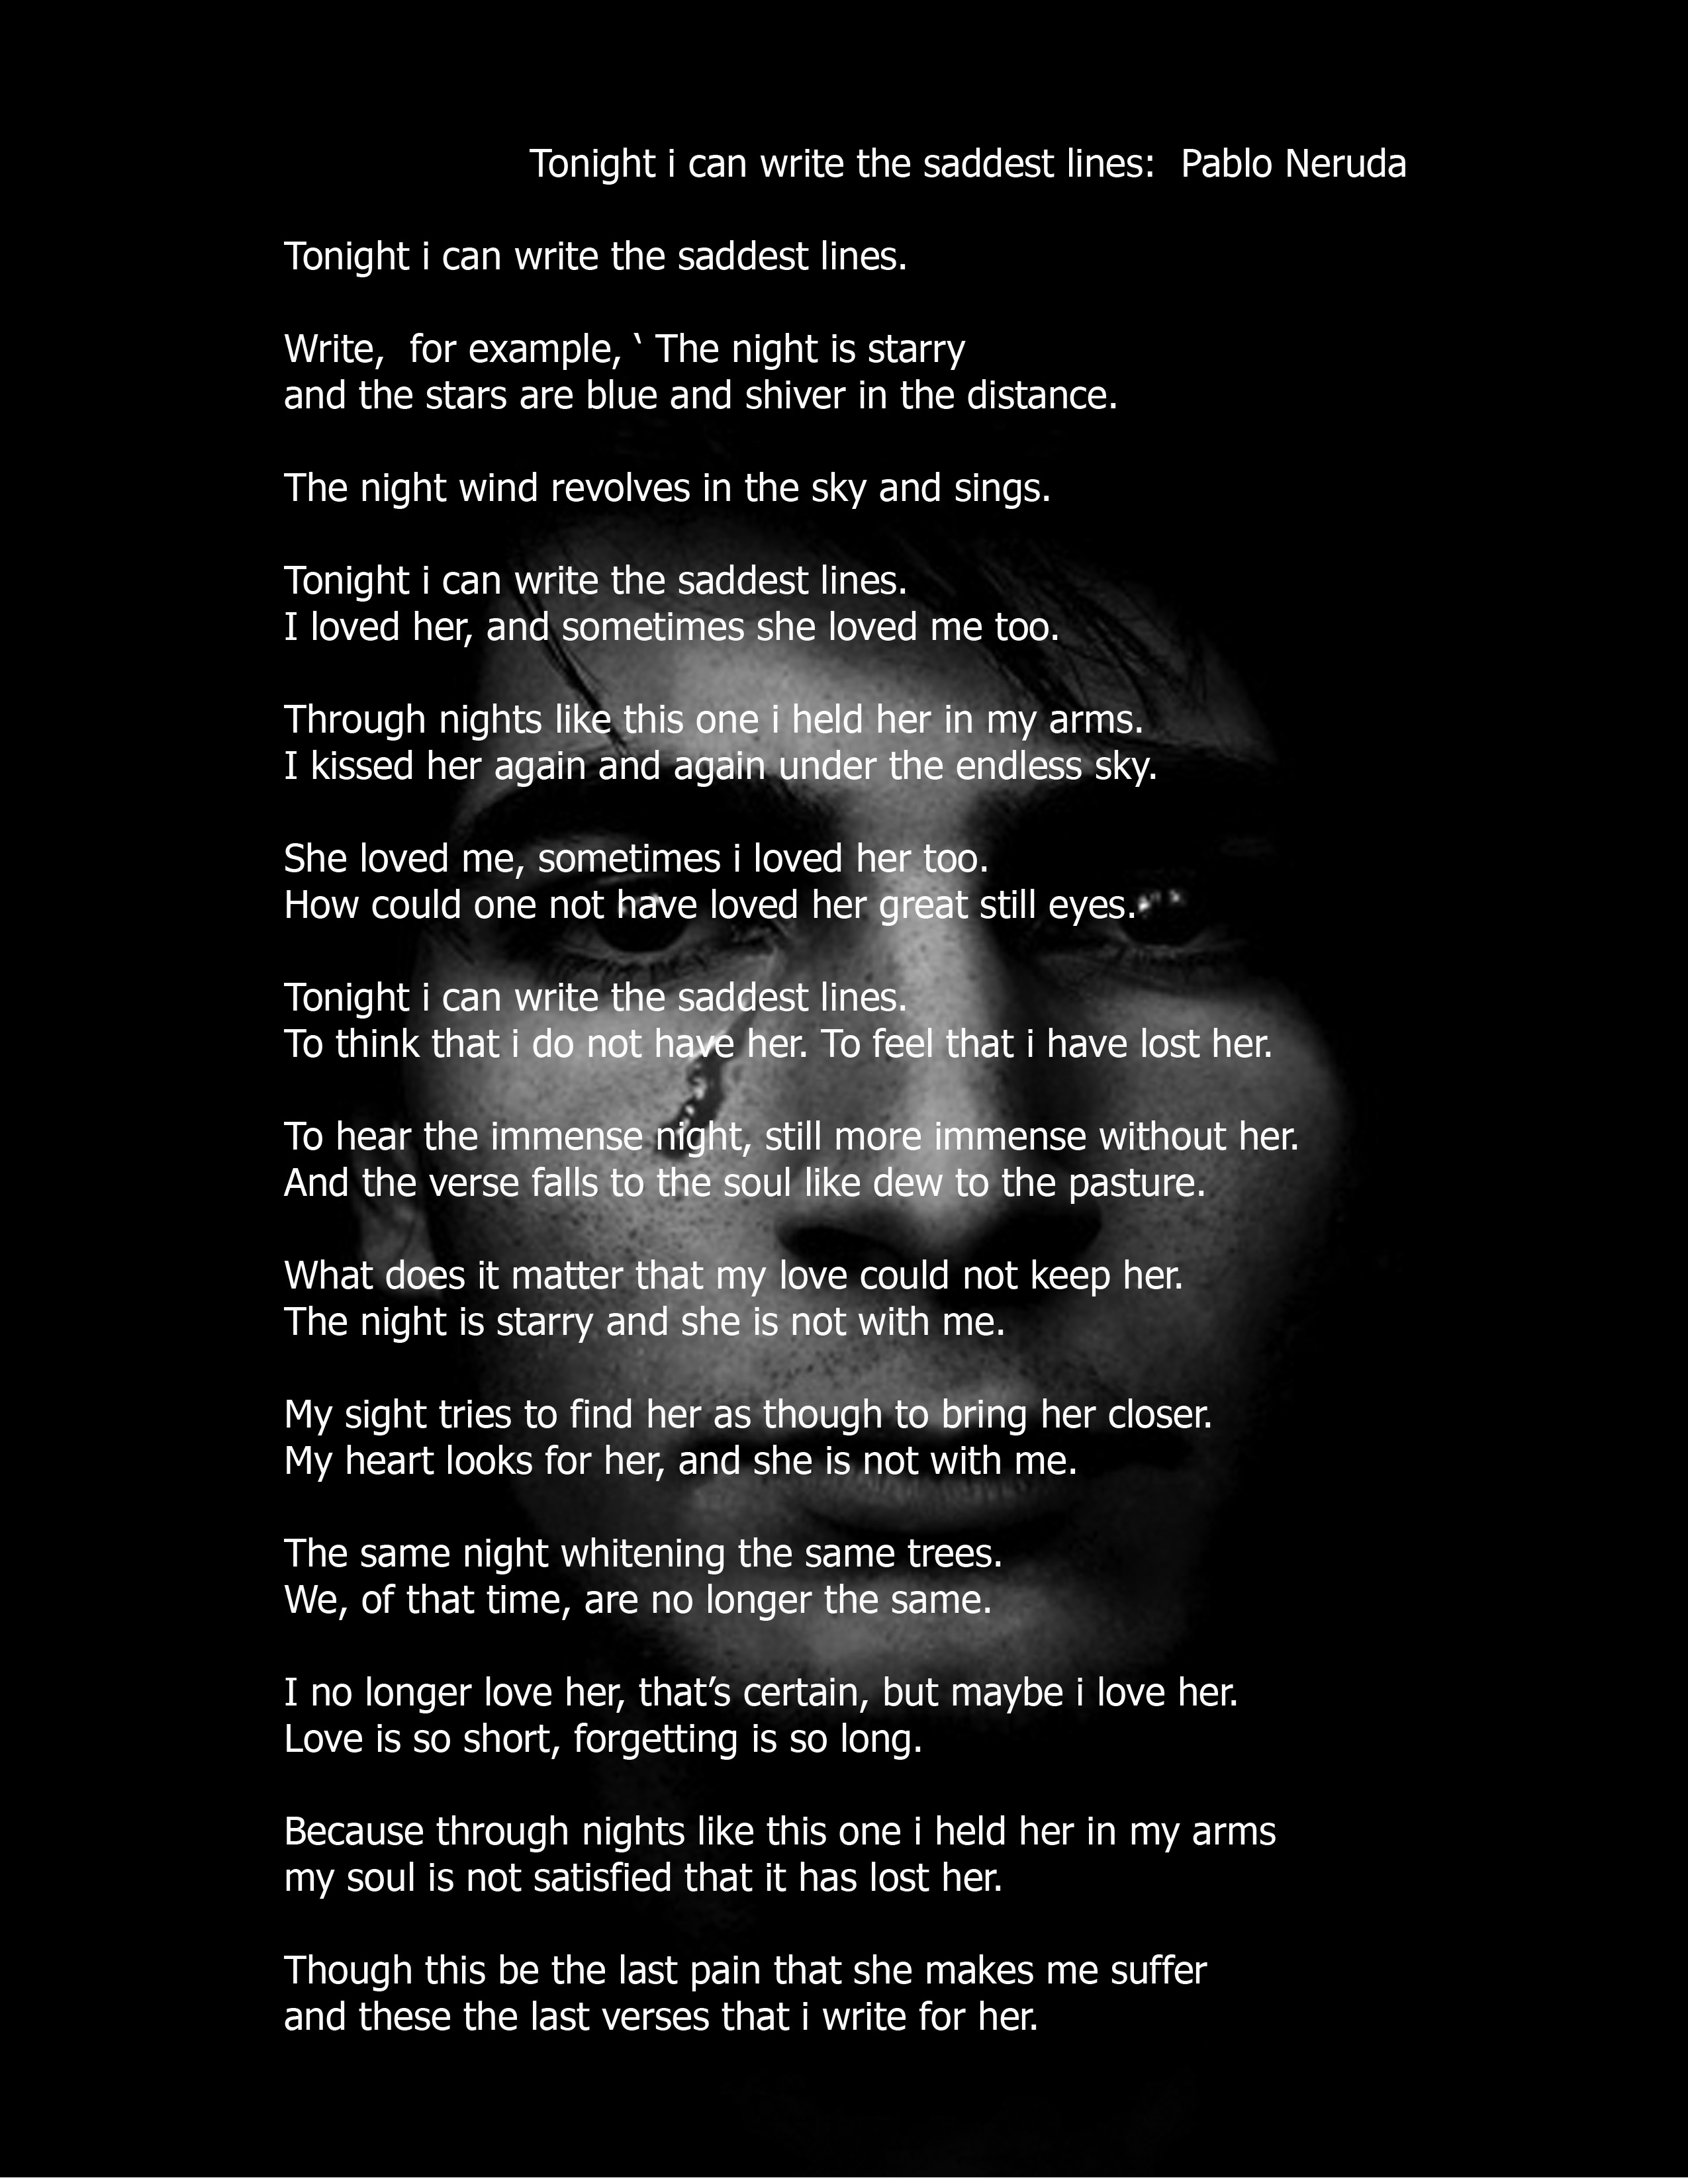 the way spain was by pablo neruda